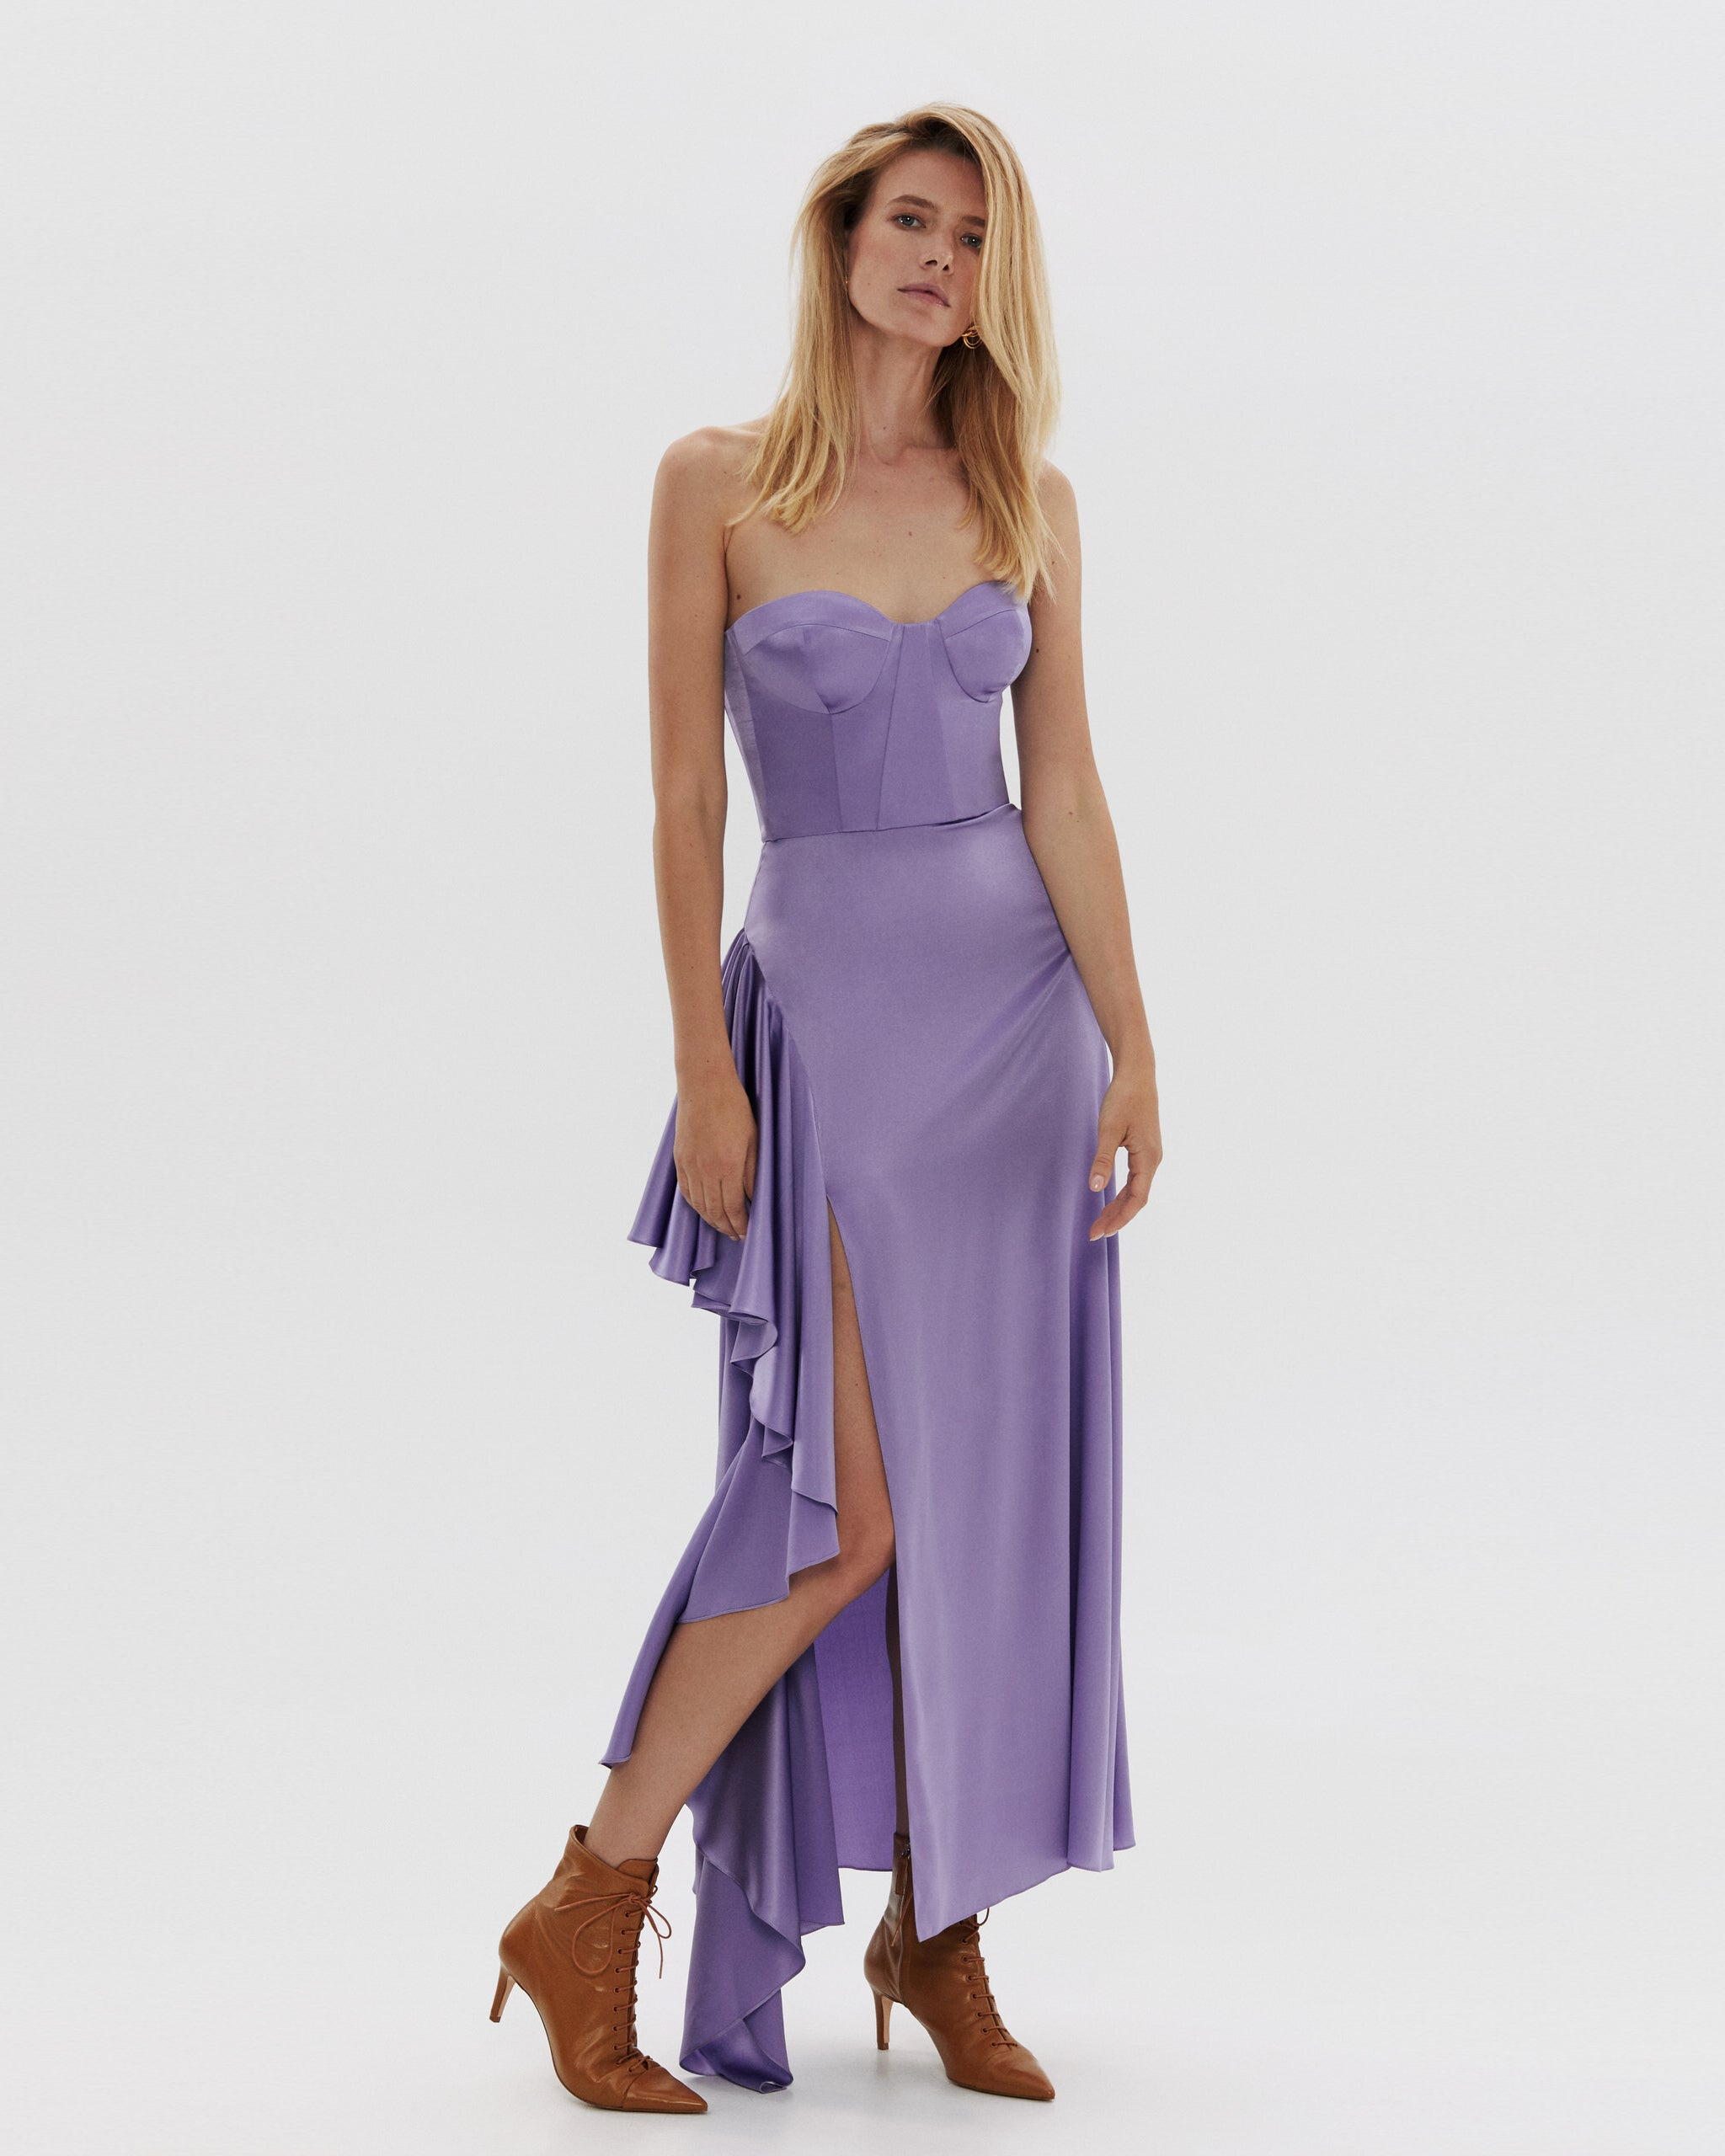 Silk corset-dress maxi